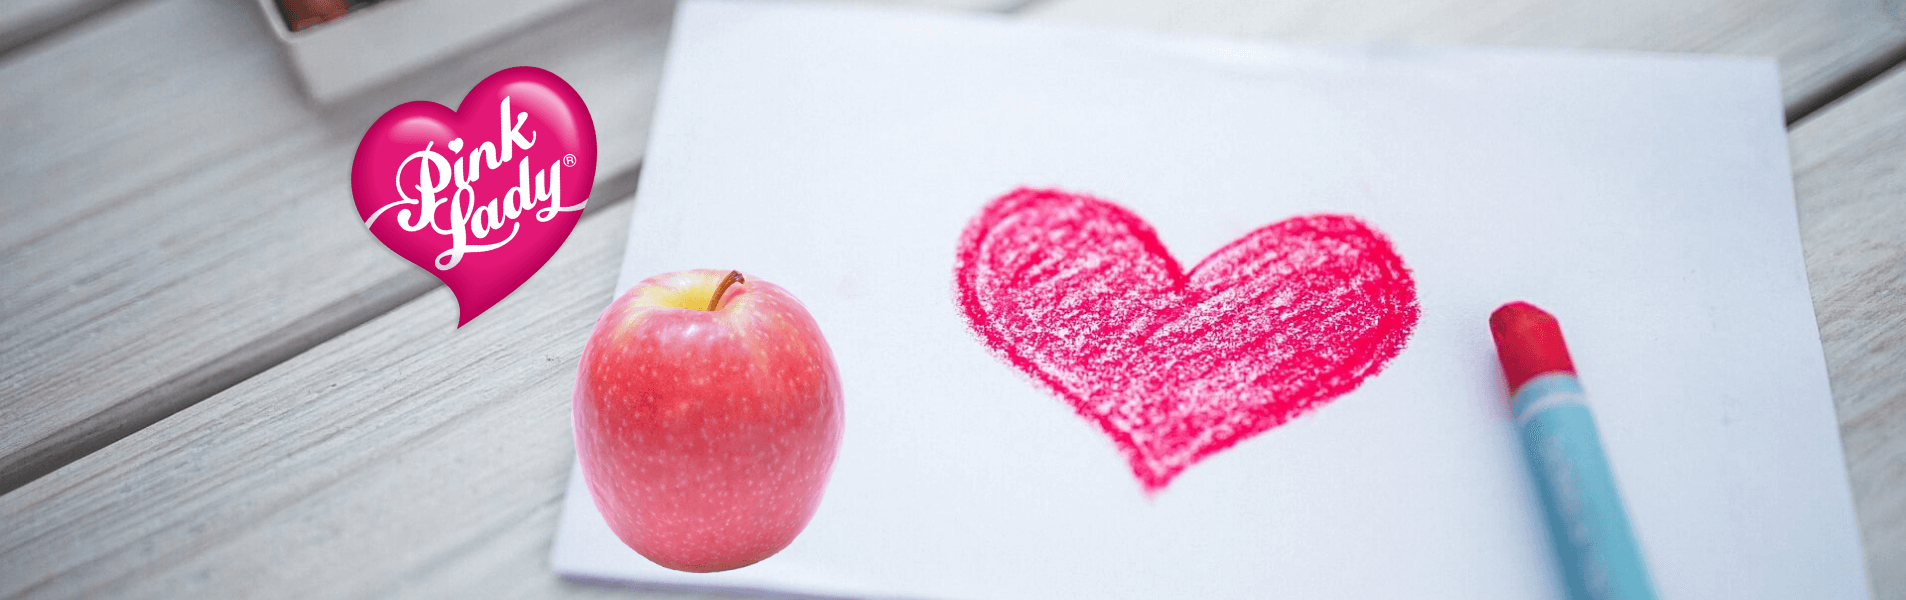 Share the Love by Giving a Pink Lady®: Activity Sheet